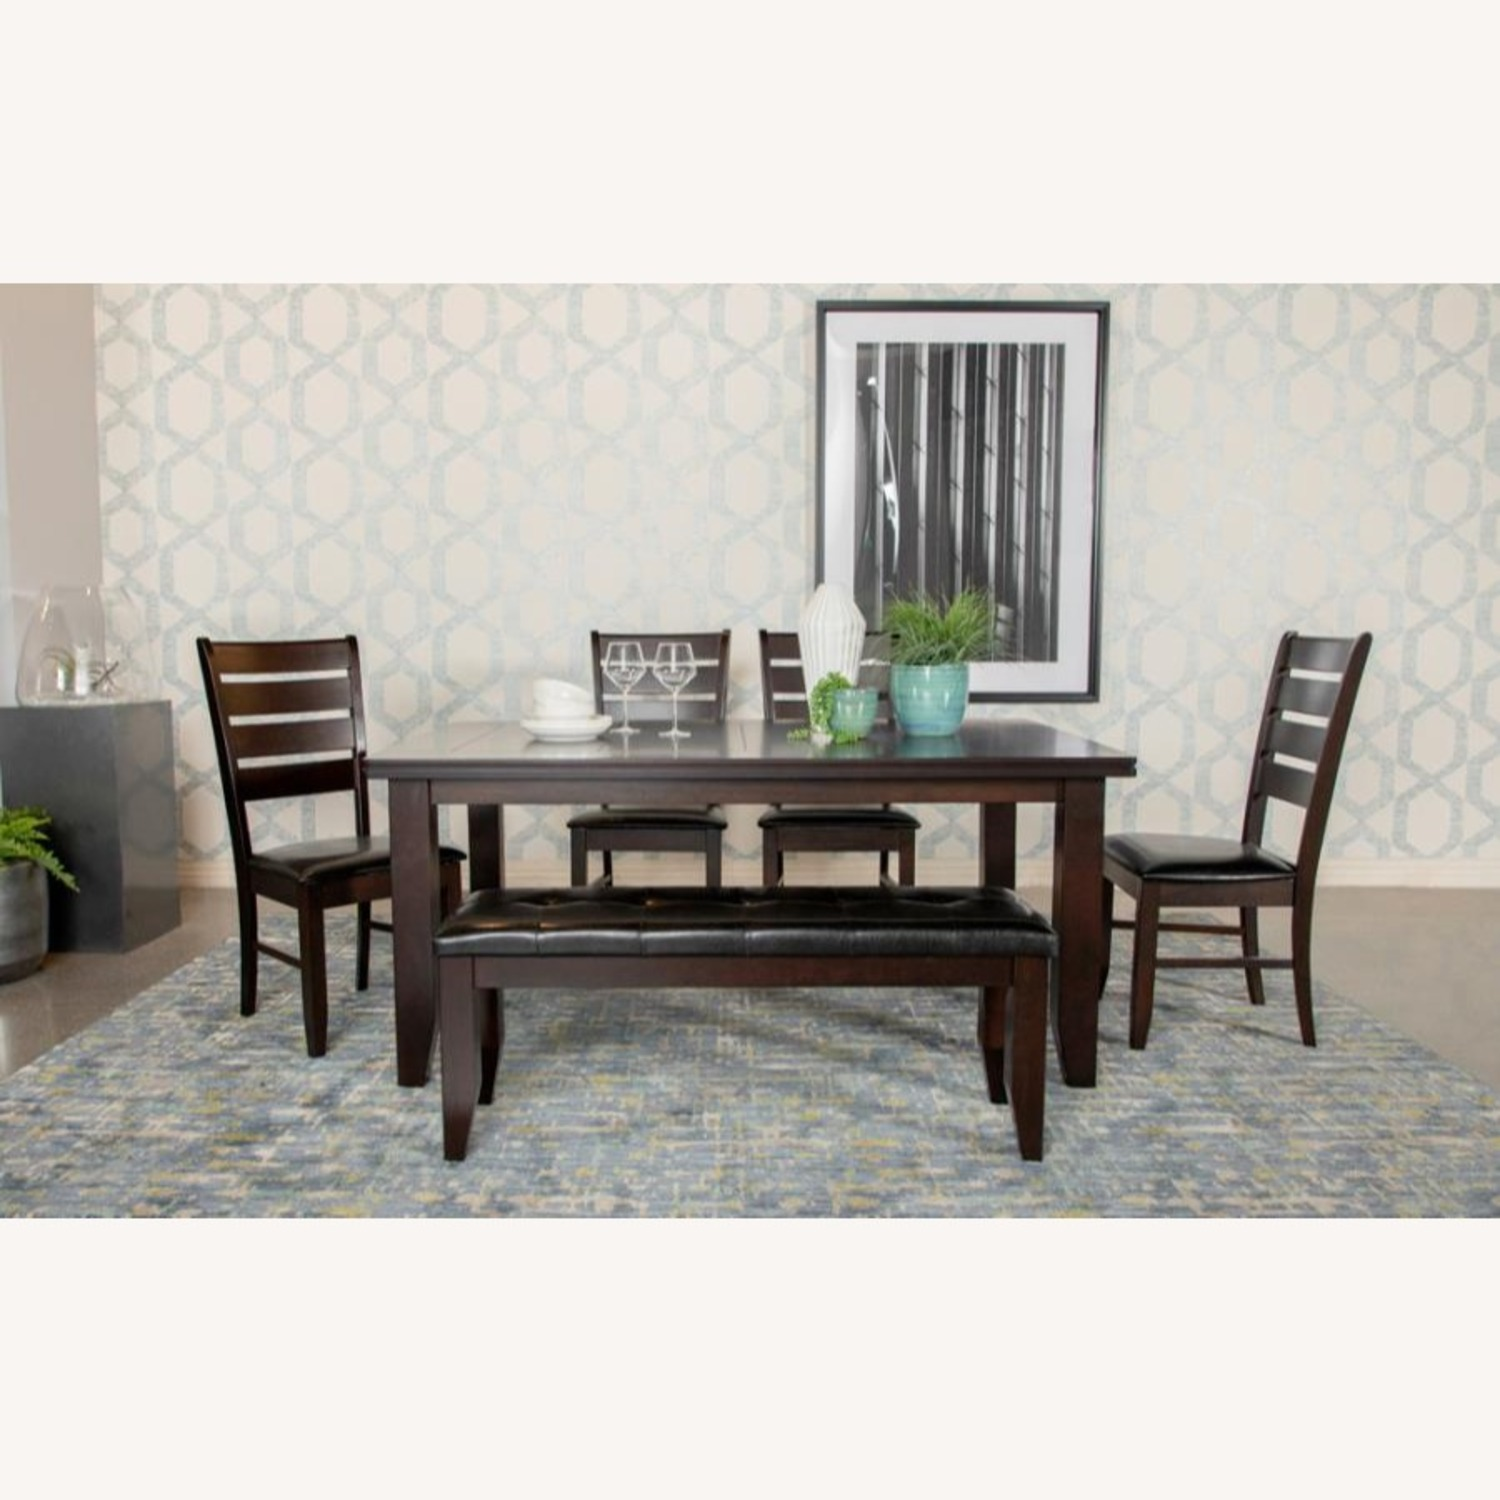 Dining Table In Cappuccino W/ Plank Style Tabletop - image-3